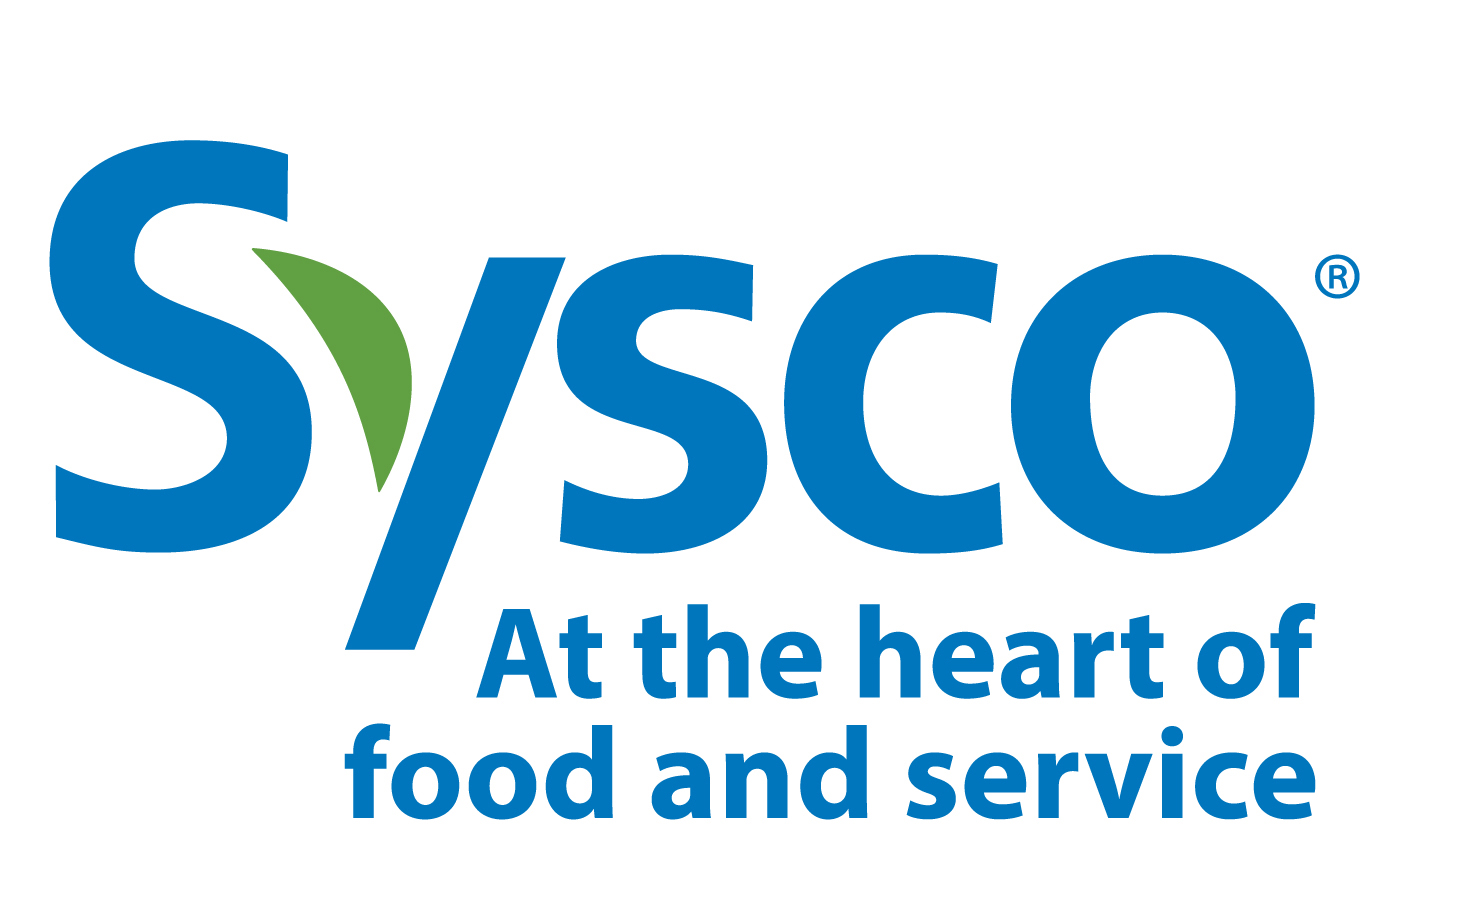 Sysco-Logo-At-the-heart-Stacked-Color-1 san diego restaurant week